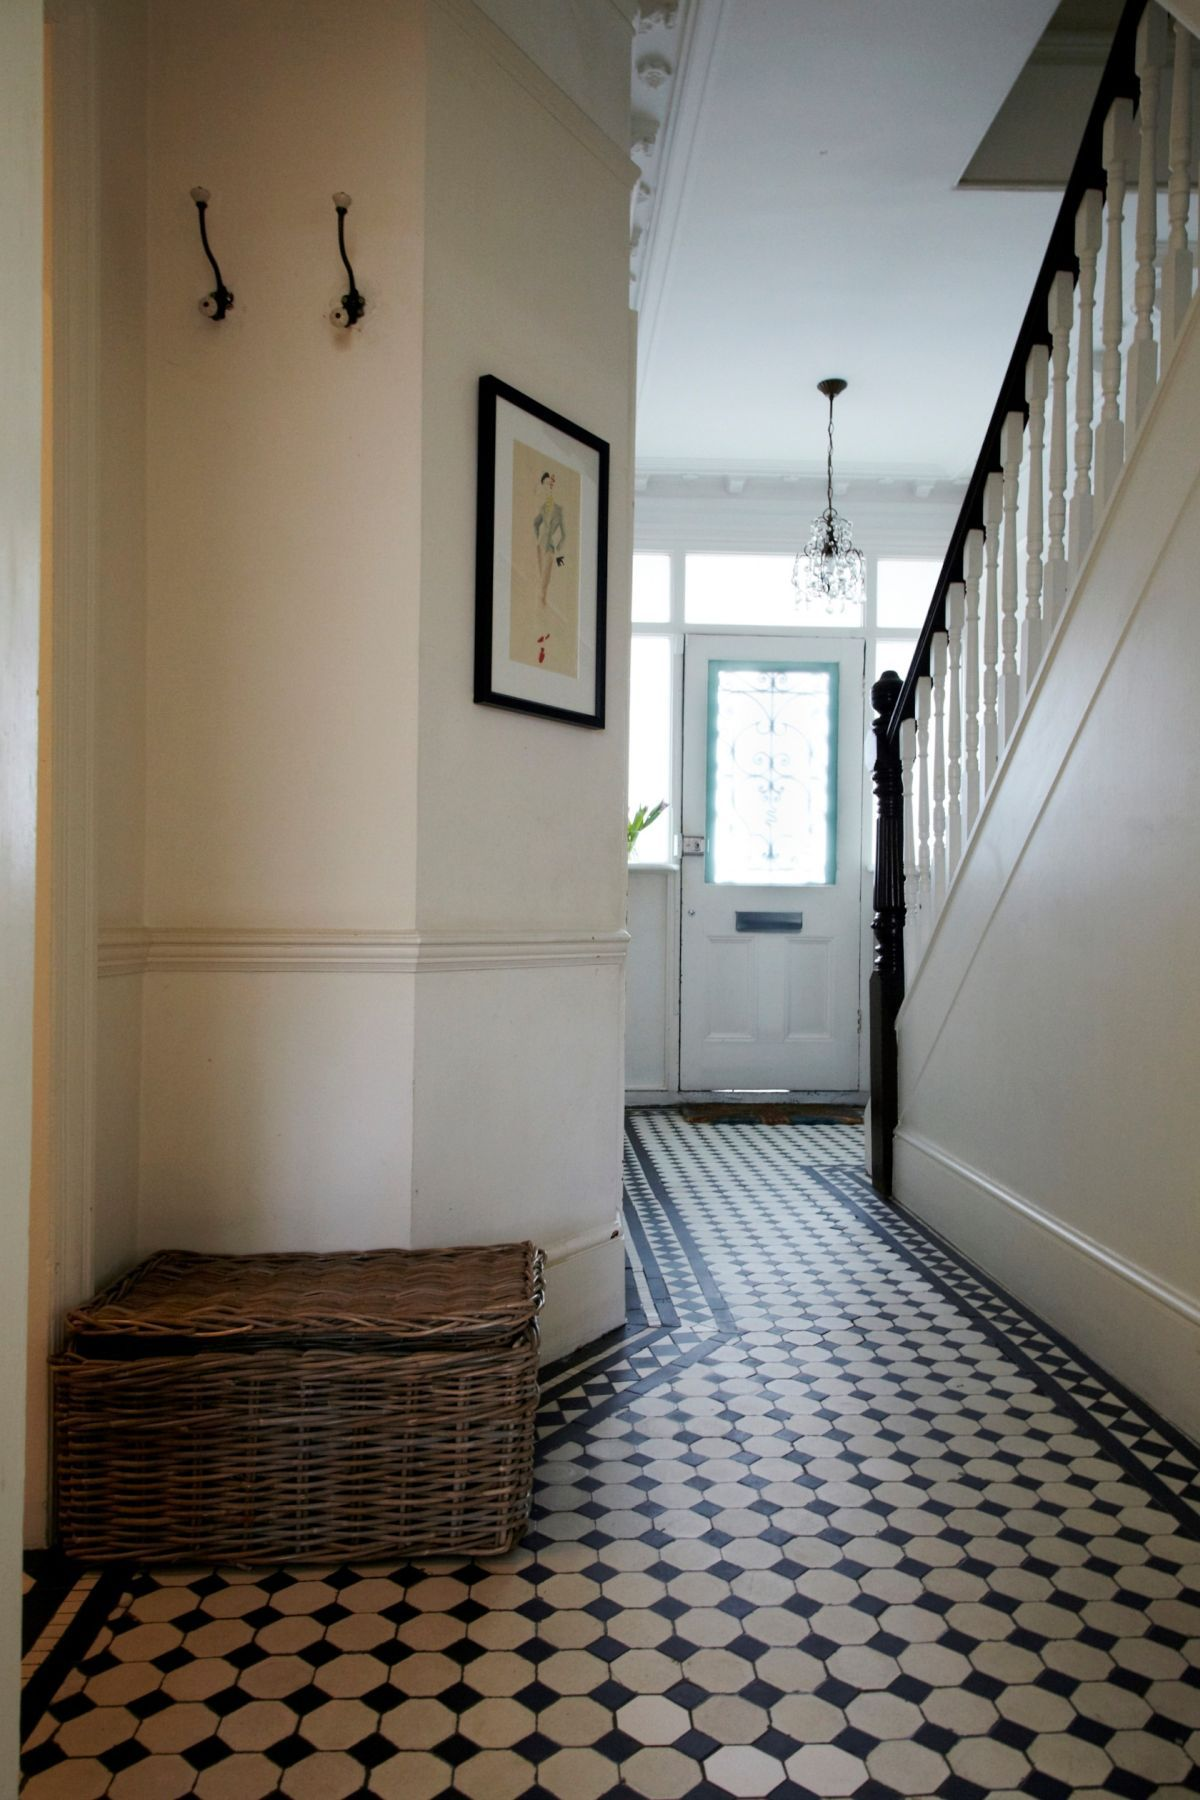 Entry Way Tile Pattern Ideas Home Tile Entryway Design Ideas Pictures Remodel And Decor Entry Way Design Entryway Tile House Tiles